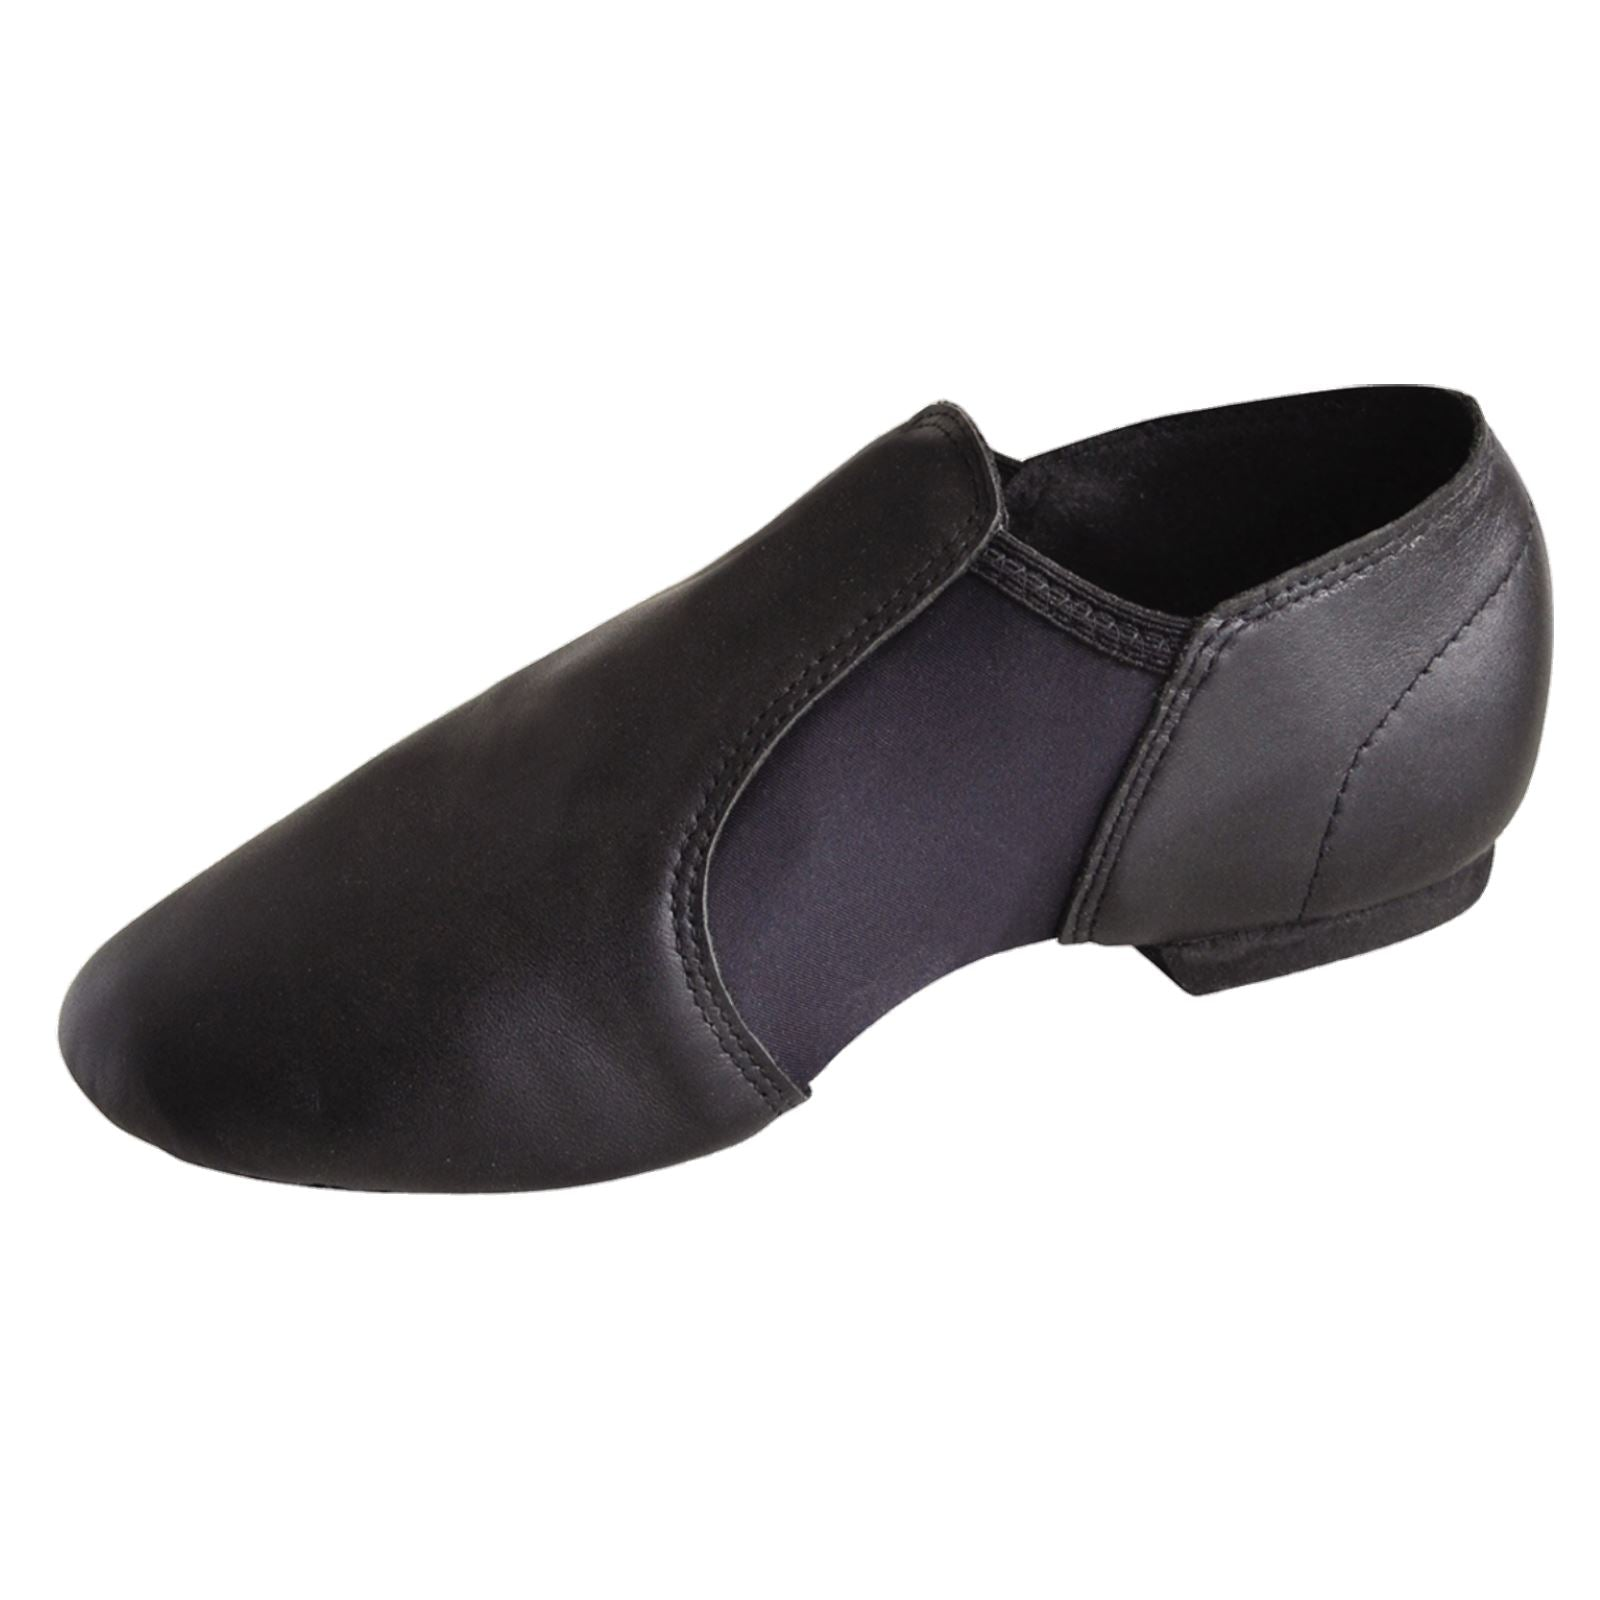 Roch Valley Leather Lace Up Jazz Modern Dance Shoes Full Micro Rubber Soles